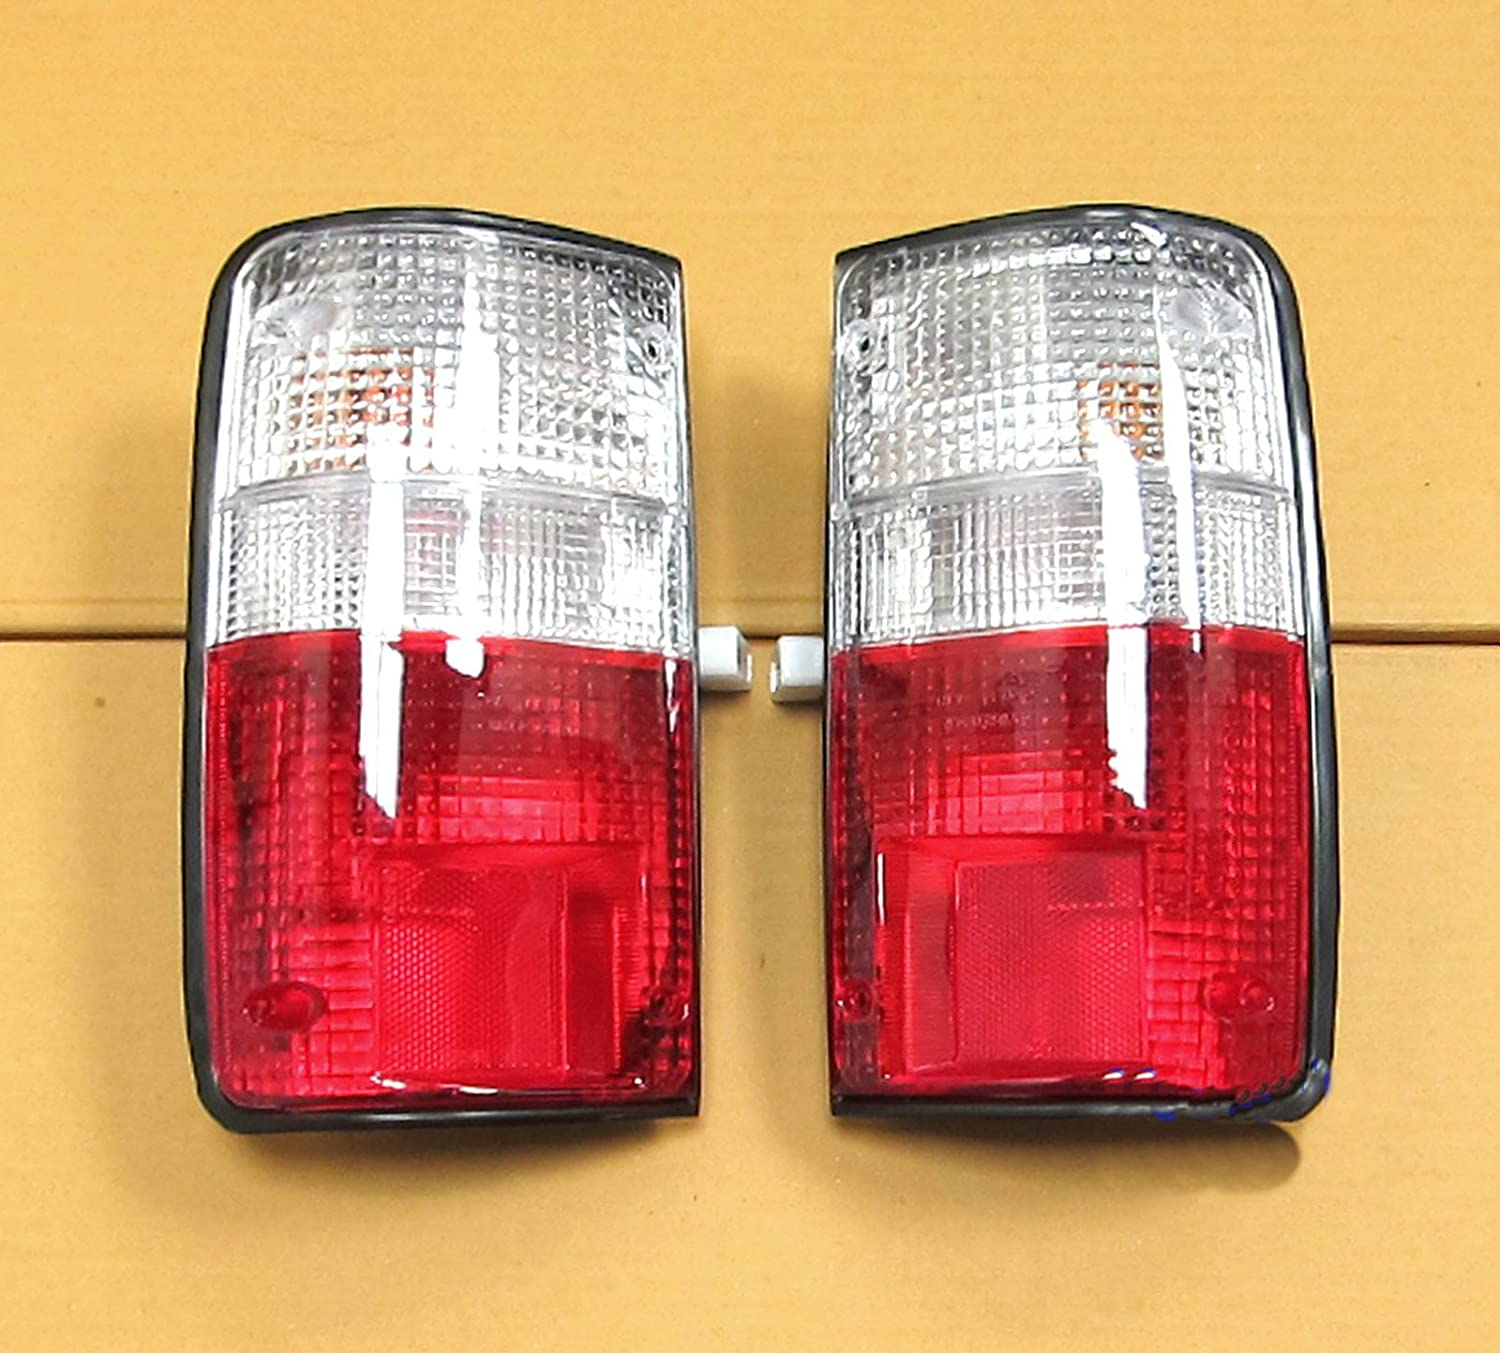 Amazon.com: 89 90 91 92 93 94 Toyota Hilux Mk3 Ln Rn Pickup Tail Rear Light Lamp Clear Red Lens: Automotive